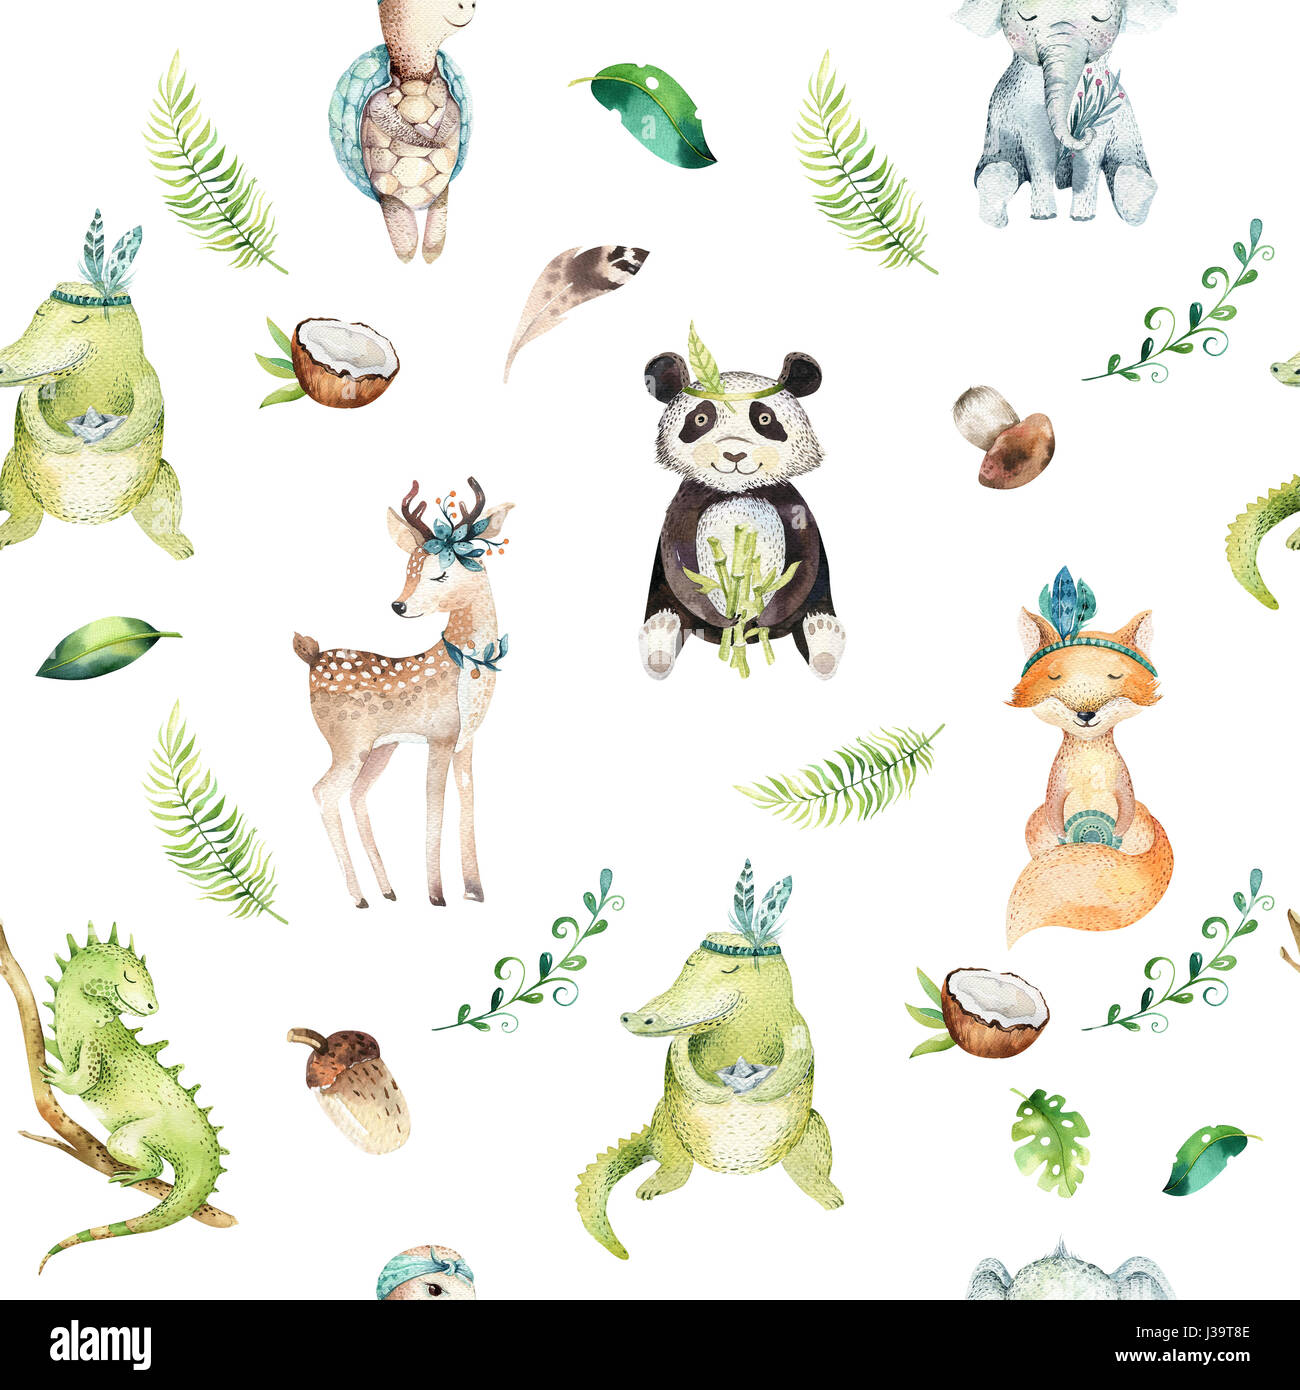 Baby Animals Nursery Isolated Seamless Pattern Watercolor Boho Stock Photo